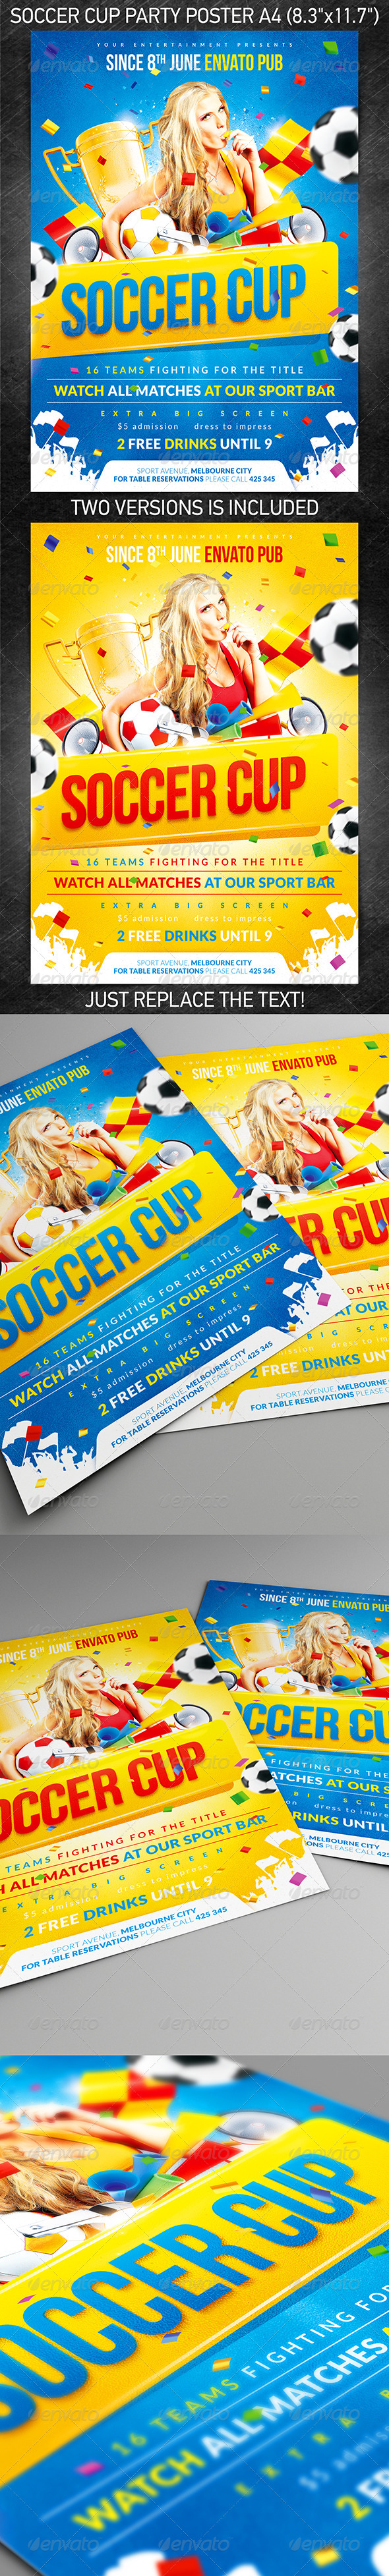 Soccer Cup party poster, PSD Template